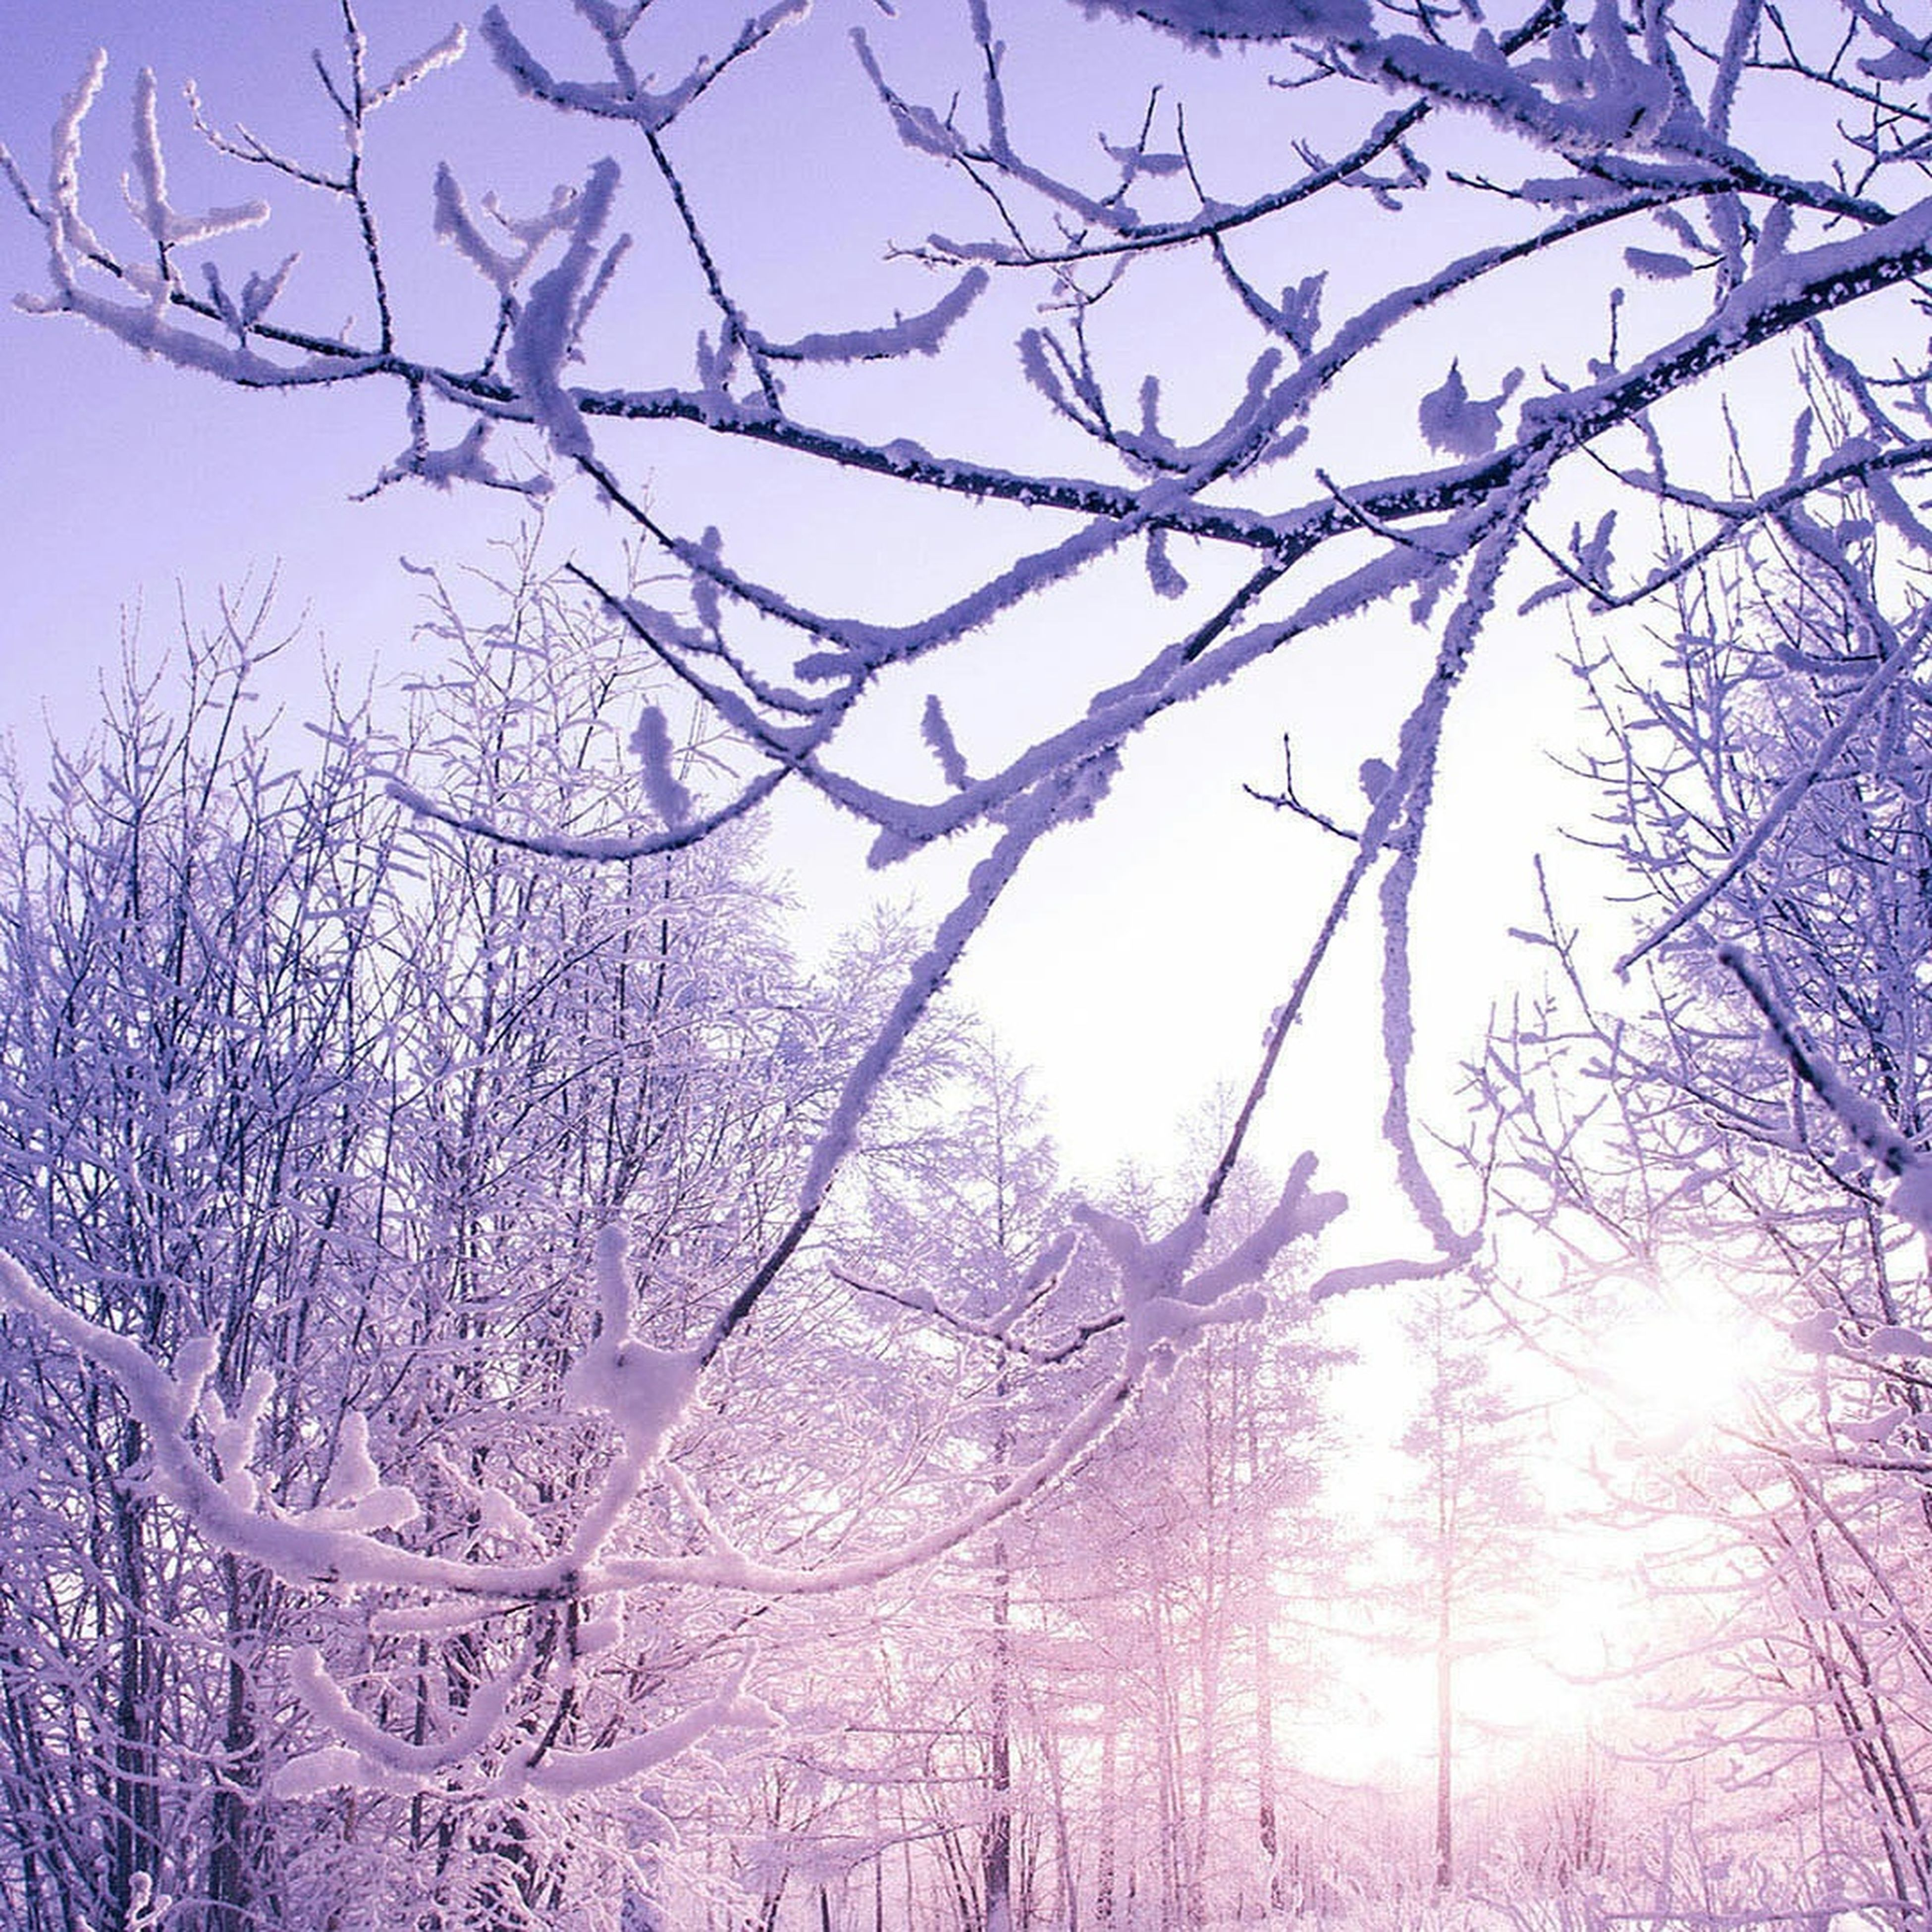 bare tree, tree, branch, beauty in nature, winter, nature, cold temperature, no people, snow, low angle view, tranquility, outdoors, scenics, day, sky, tranquil scene, growth, flower, freshness